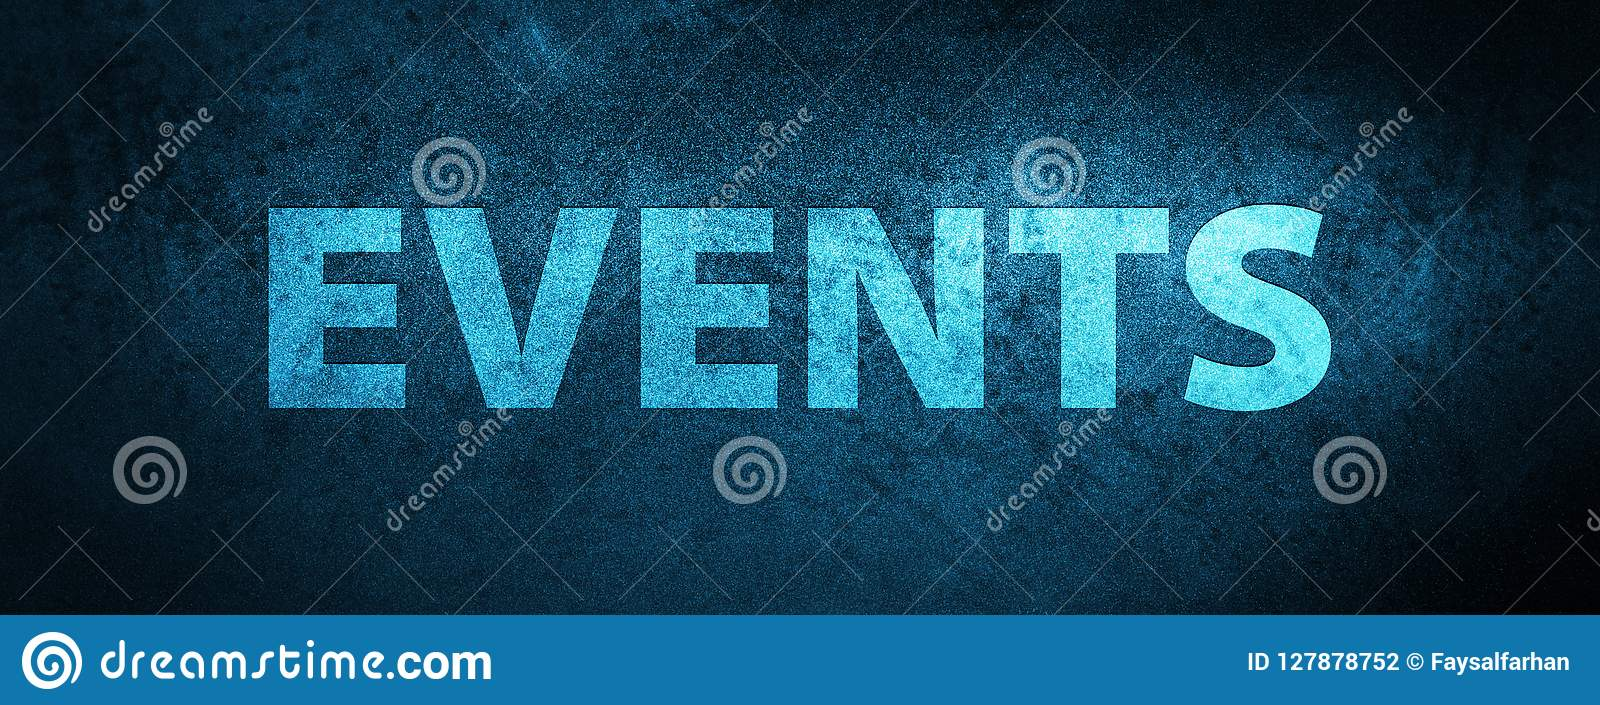 Events Special Blue Banner Background Stock Illustration Illustration Of Background Word 127878752